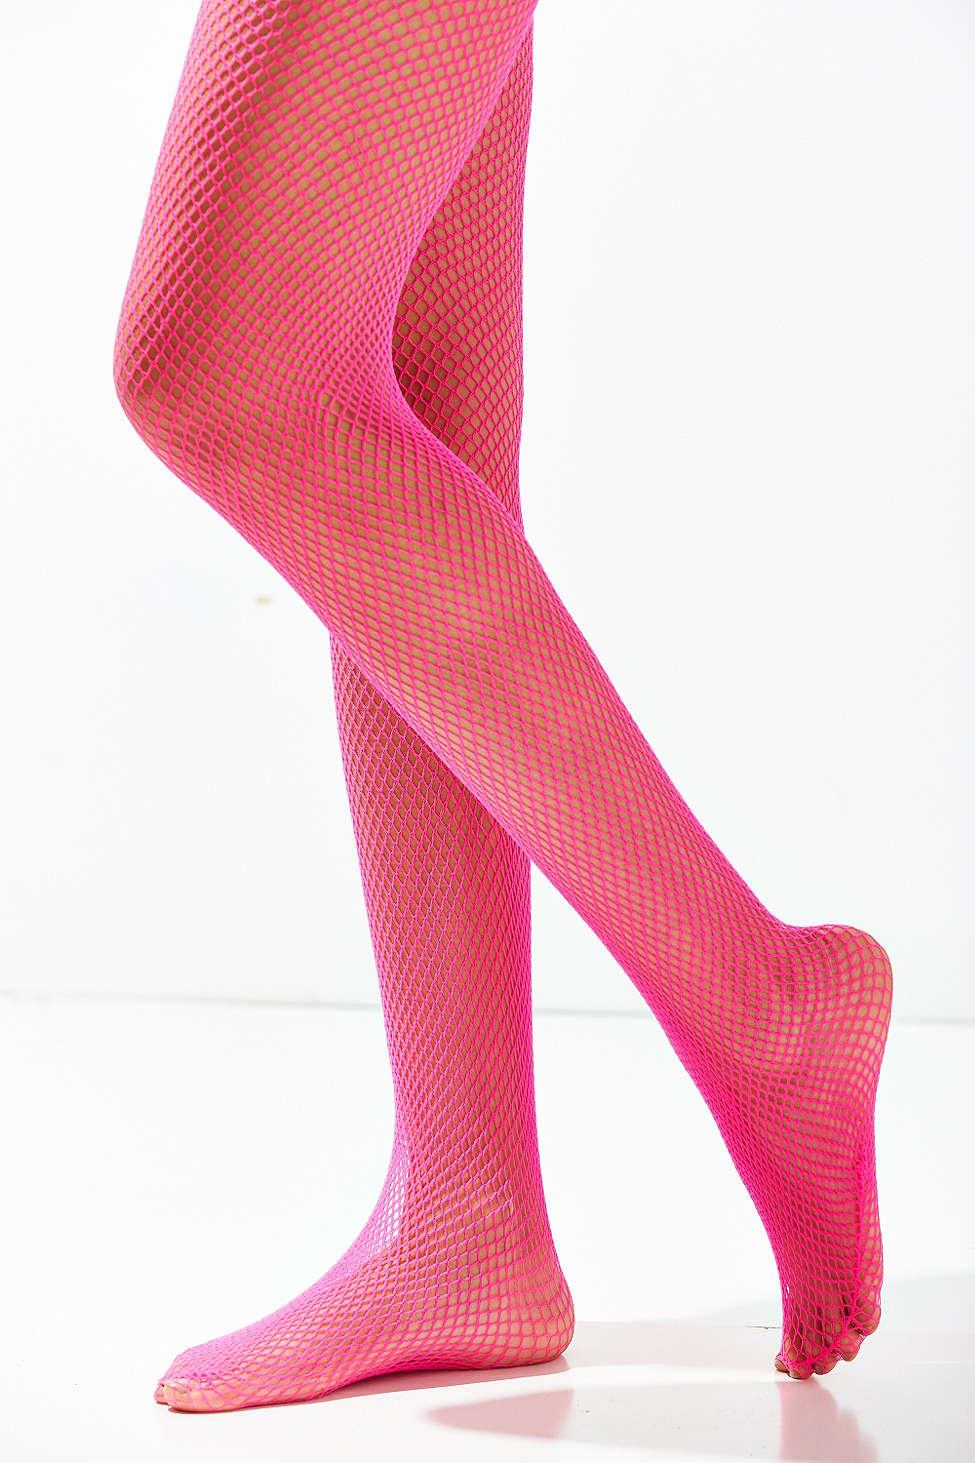 6525bb072102b Lyst - Urban Outfitters Fishnet Tight in Pink